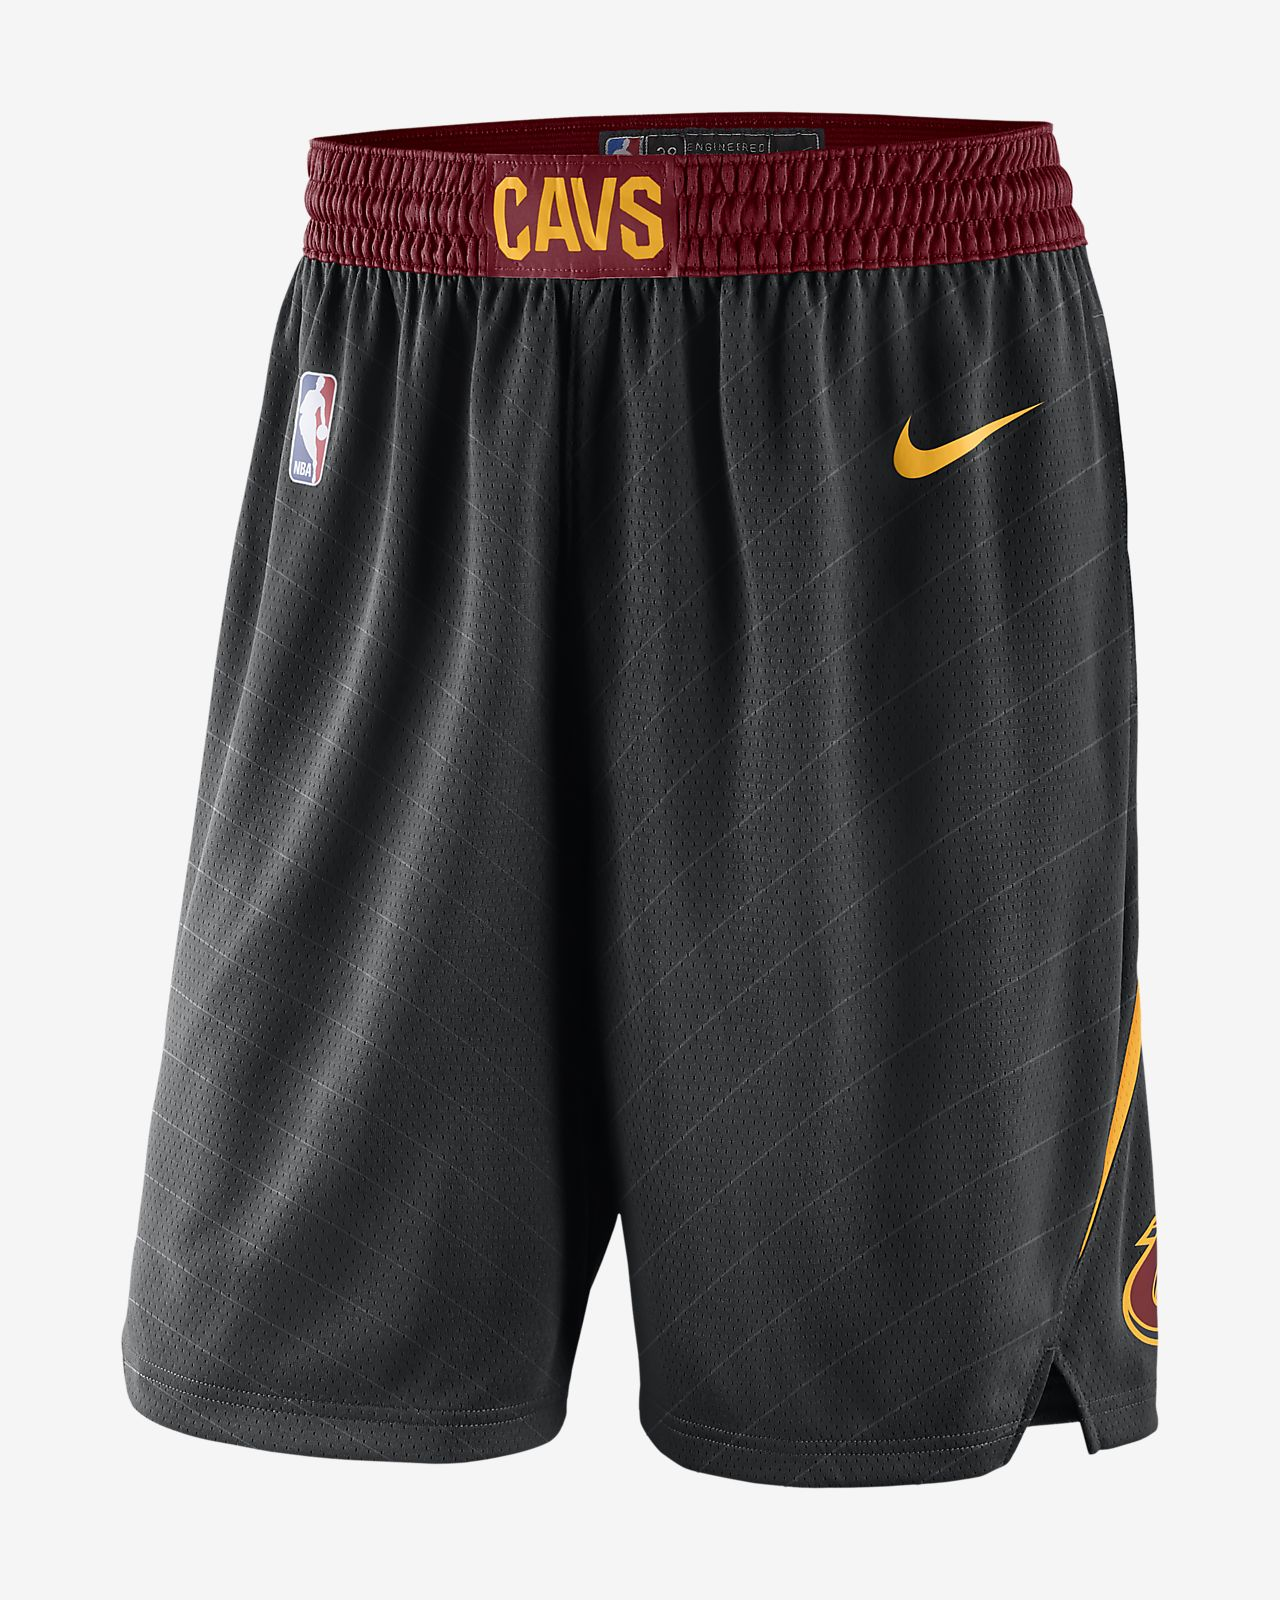 Cleveland Cavaliers Statement Edition Swingman Nike NBA-shorts for herre